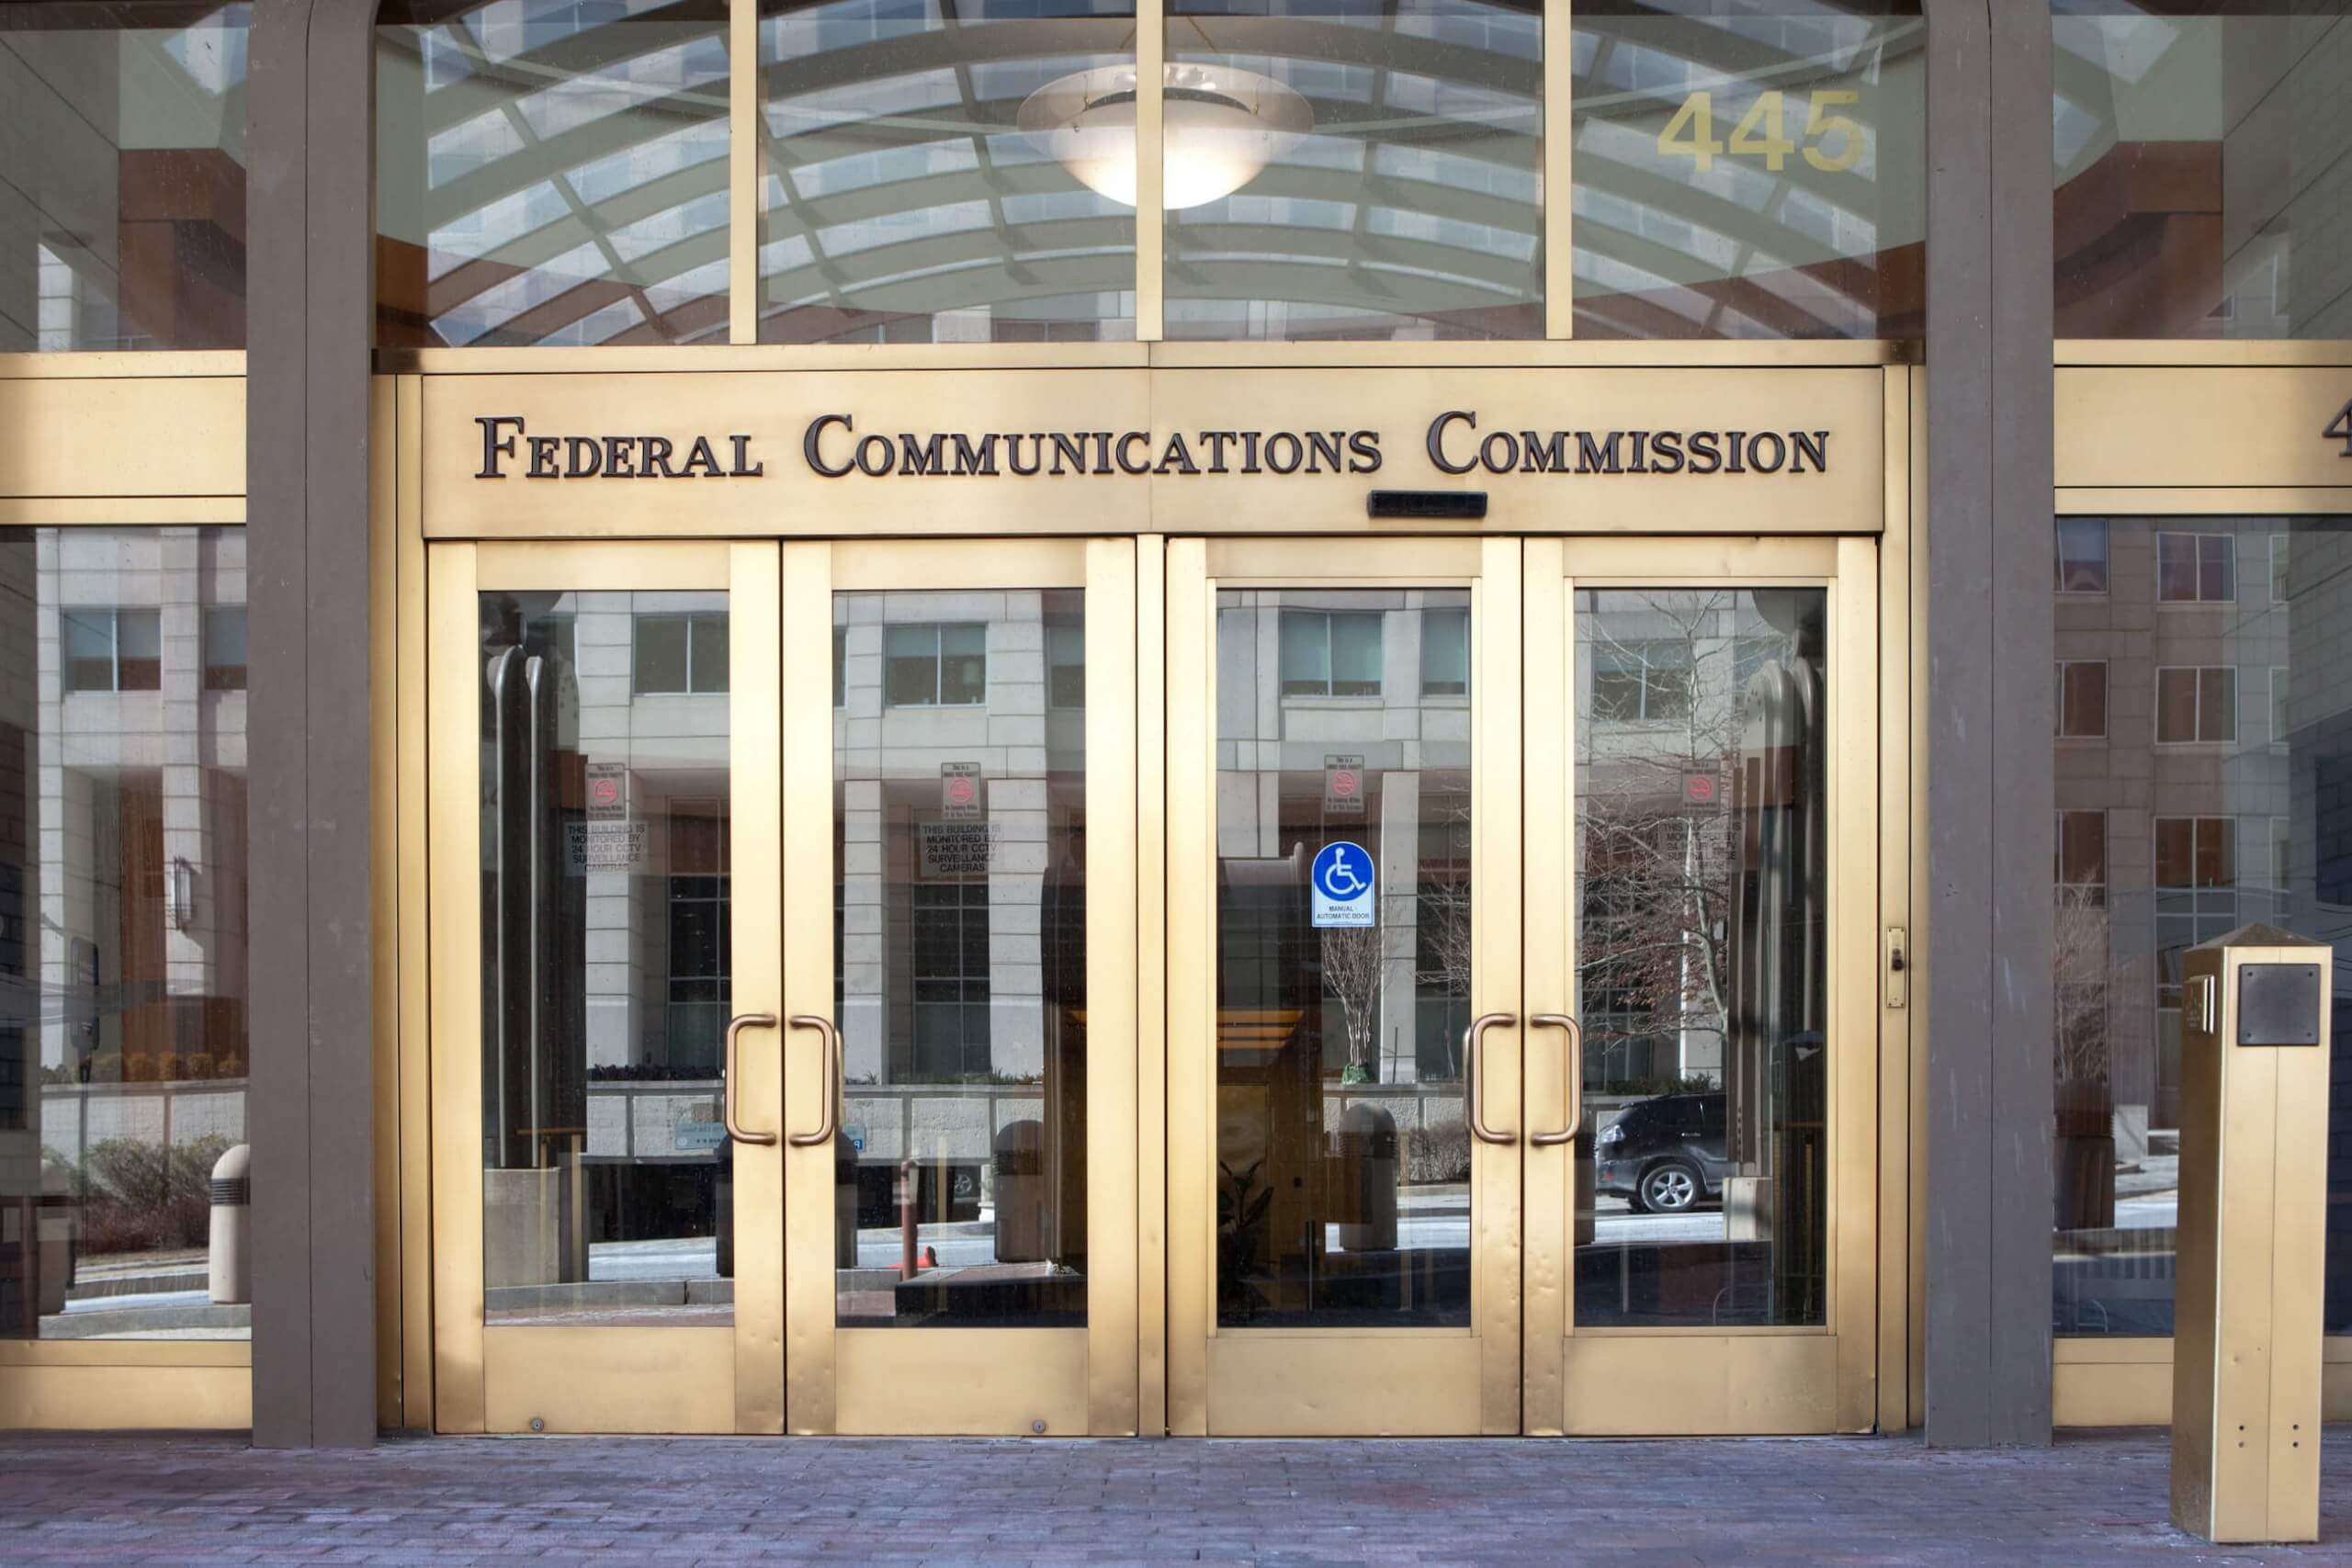 FCC to implement '988' dialing code for easy access to suicide prevention counseling